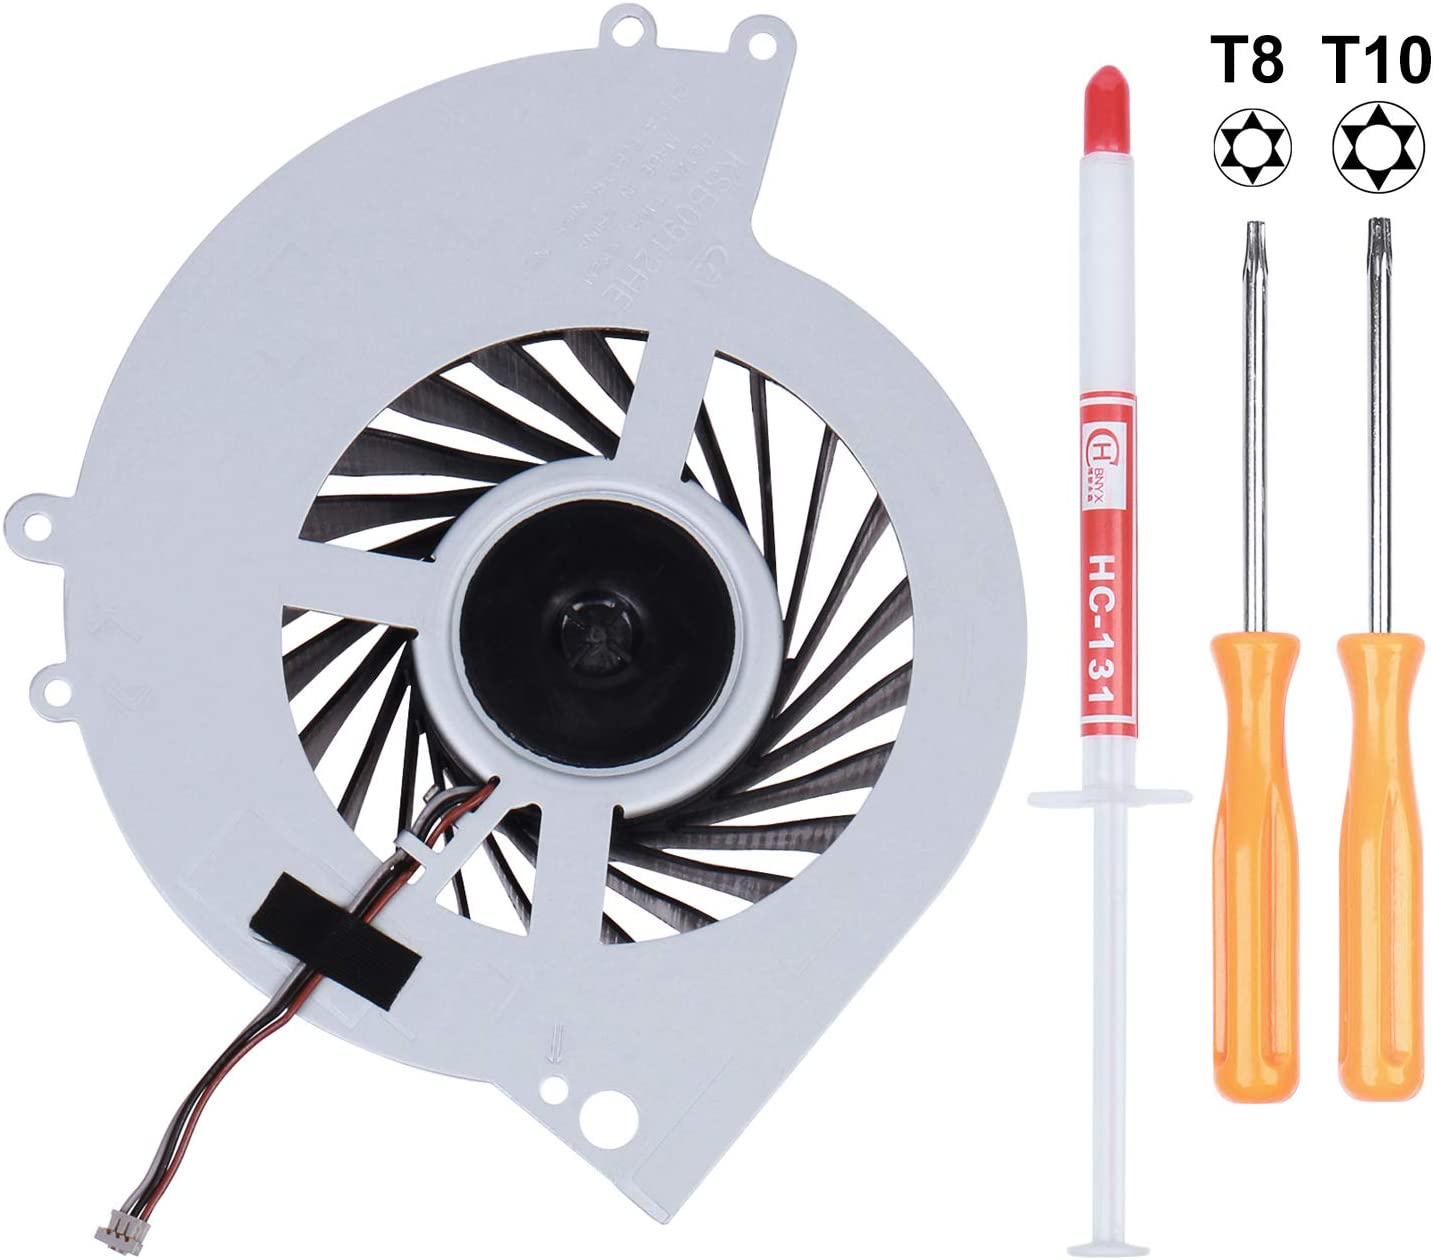 Li-SUN CPU Cooling Fan KSB0912HE-CK2M, Internal Cooler Replacement for Sony Playstation 4 PS4 CUH-10XXA (CUH-1000A CUH-1001A), and CUH-11XXA (CUH-1100A CUH-1115A) Console Series with Tool Kit